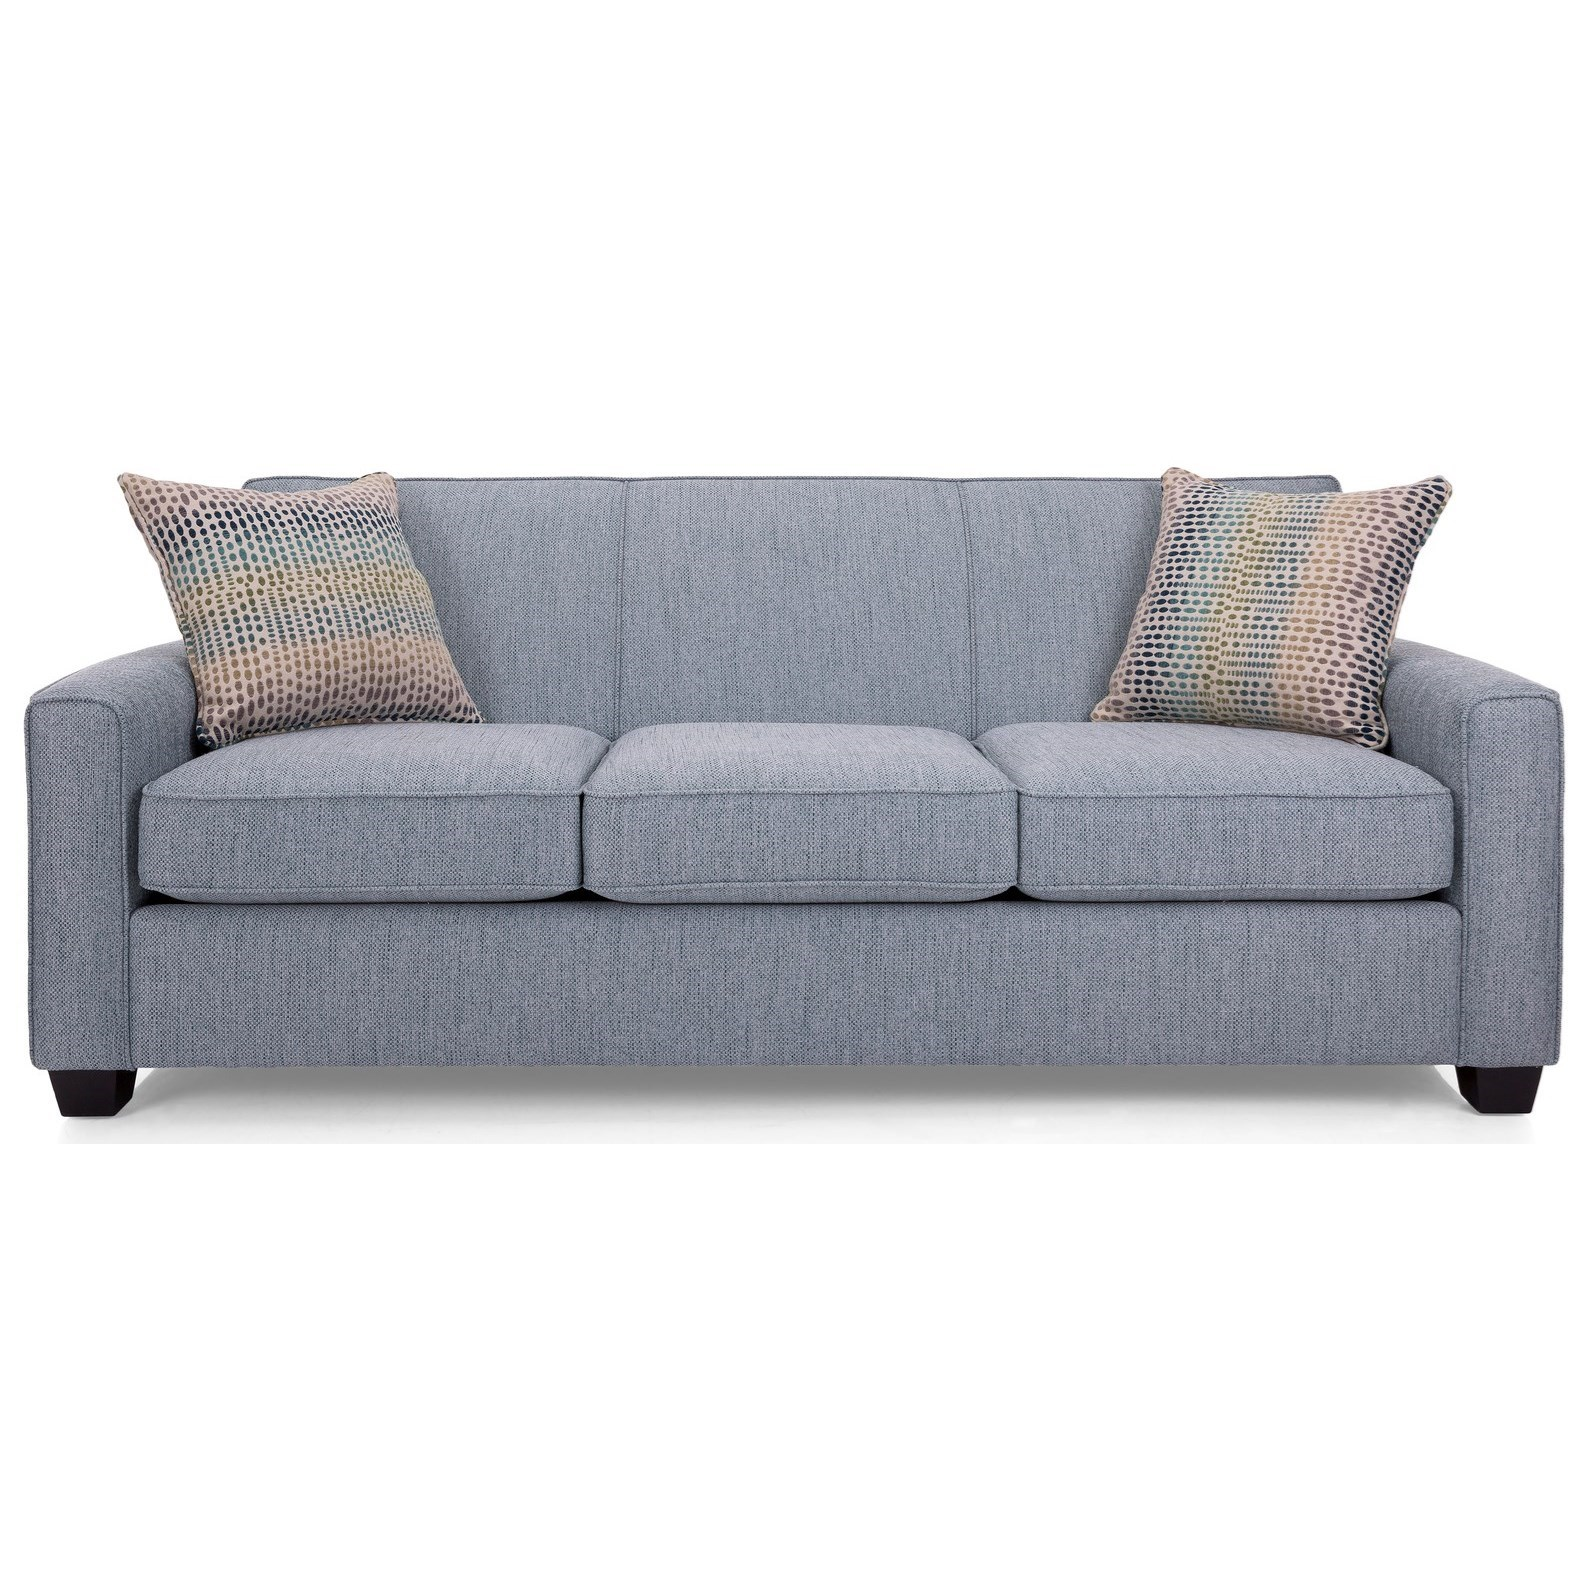 2989 Sofa by Taelor Designs at Bennett's Furniture and Mattresses